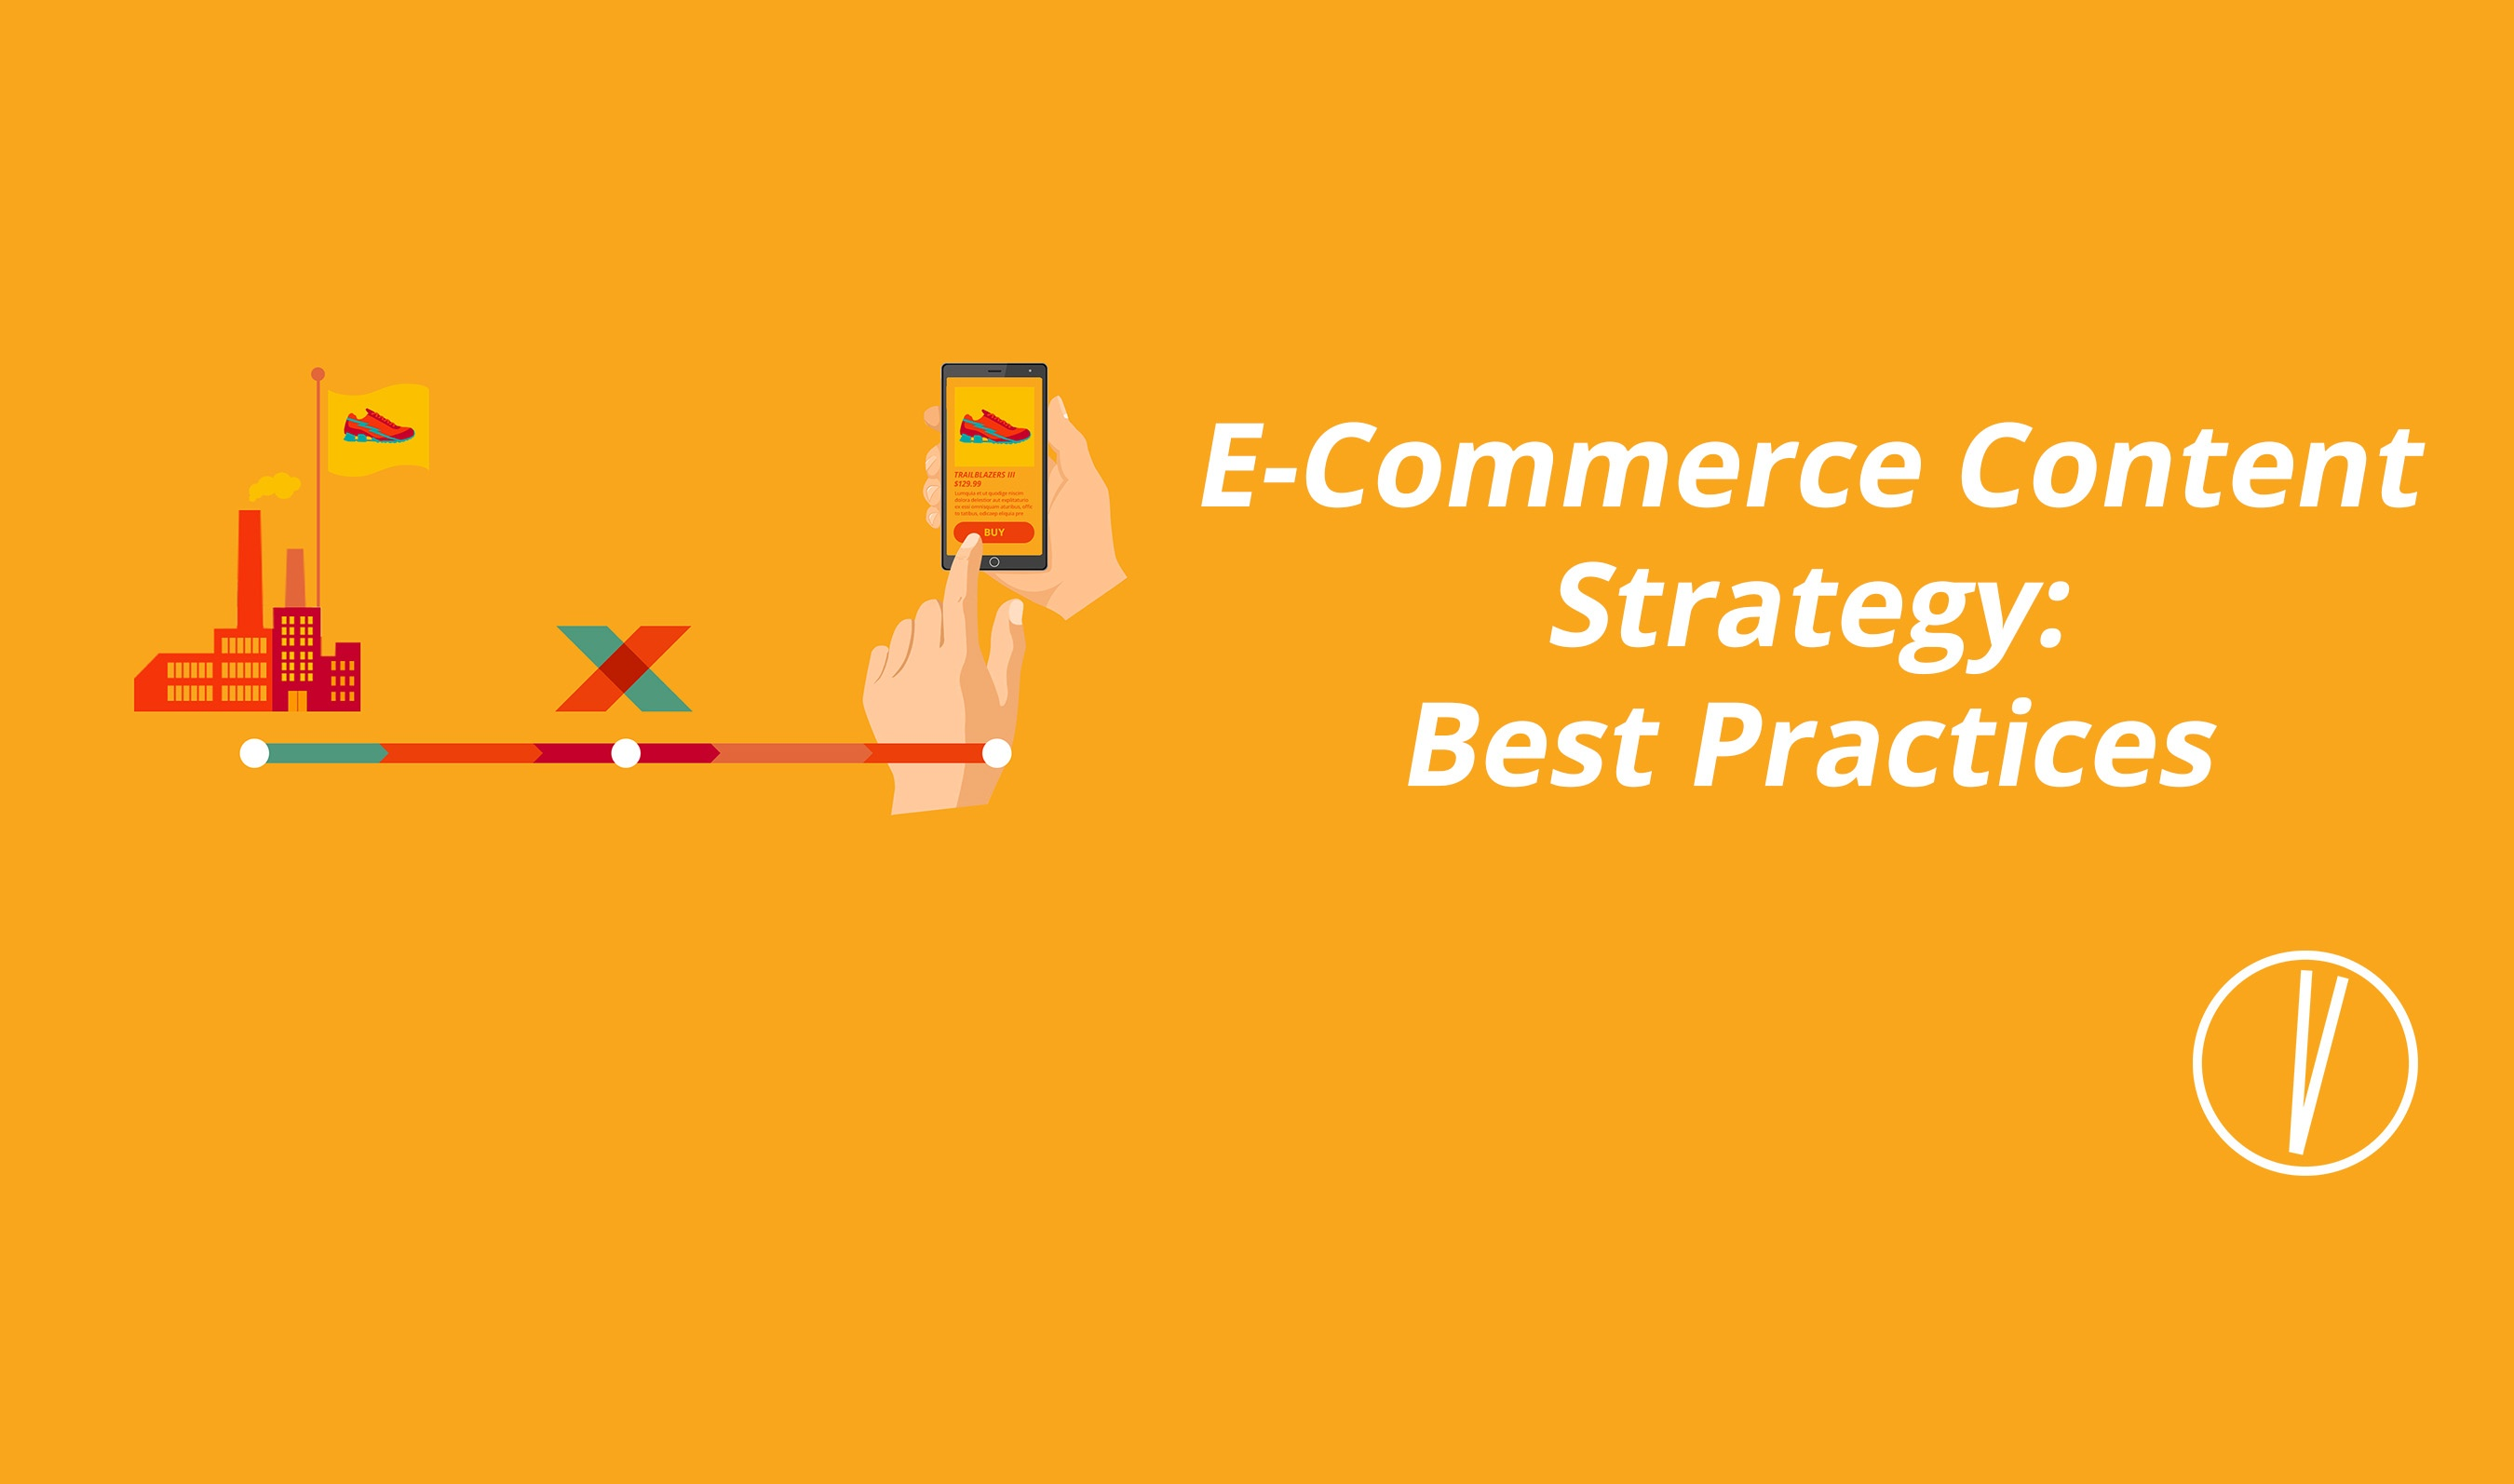 Ecommerce Content Strategy Next Steps  by Virtucom Group.jpg